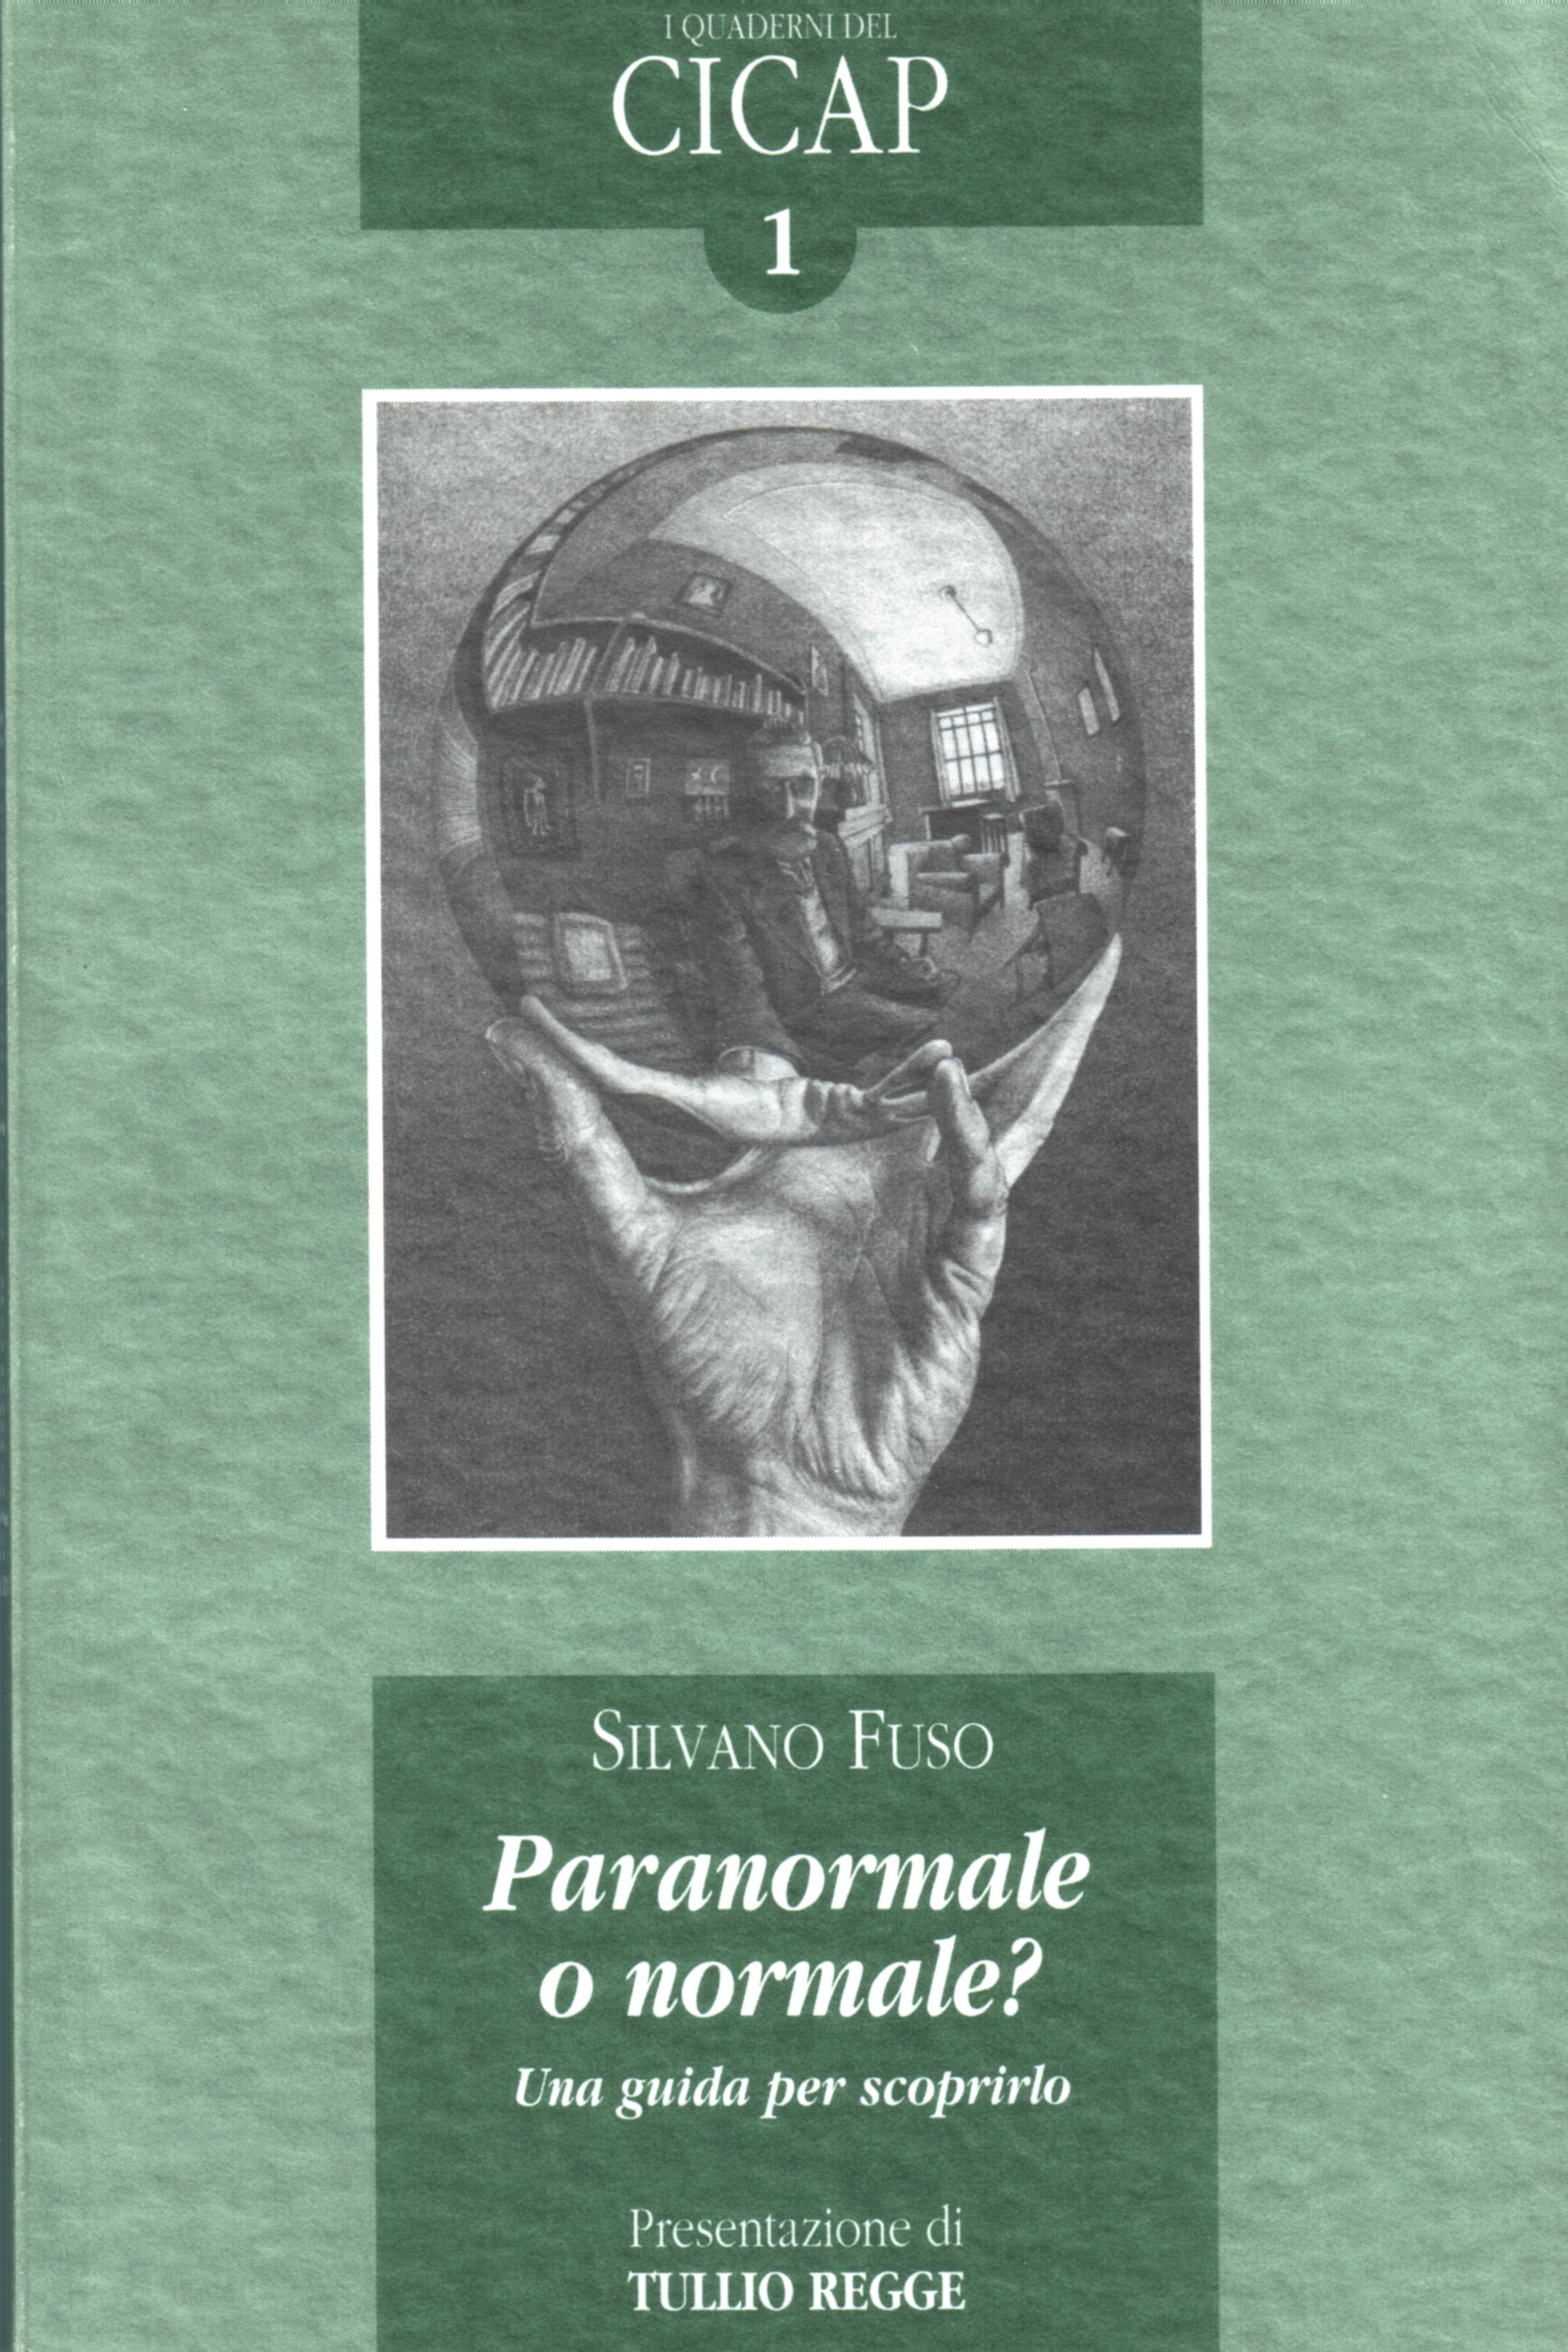 Paranormale o normale?